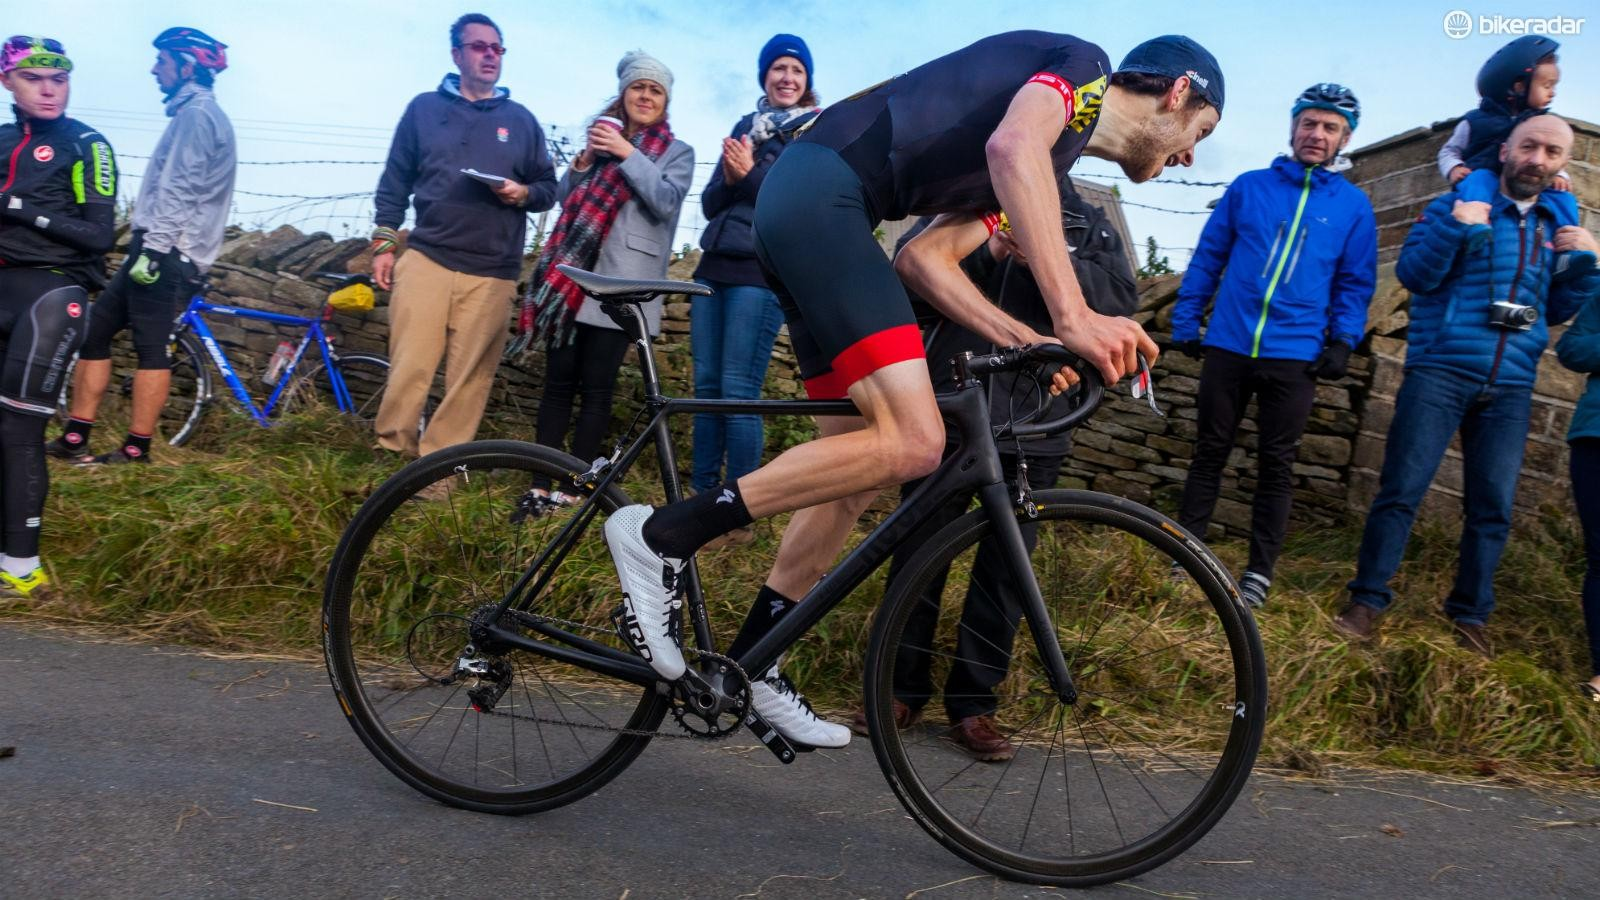 For hill-climb season, both rider and bike must be as lean as possible